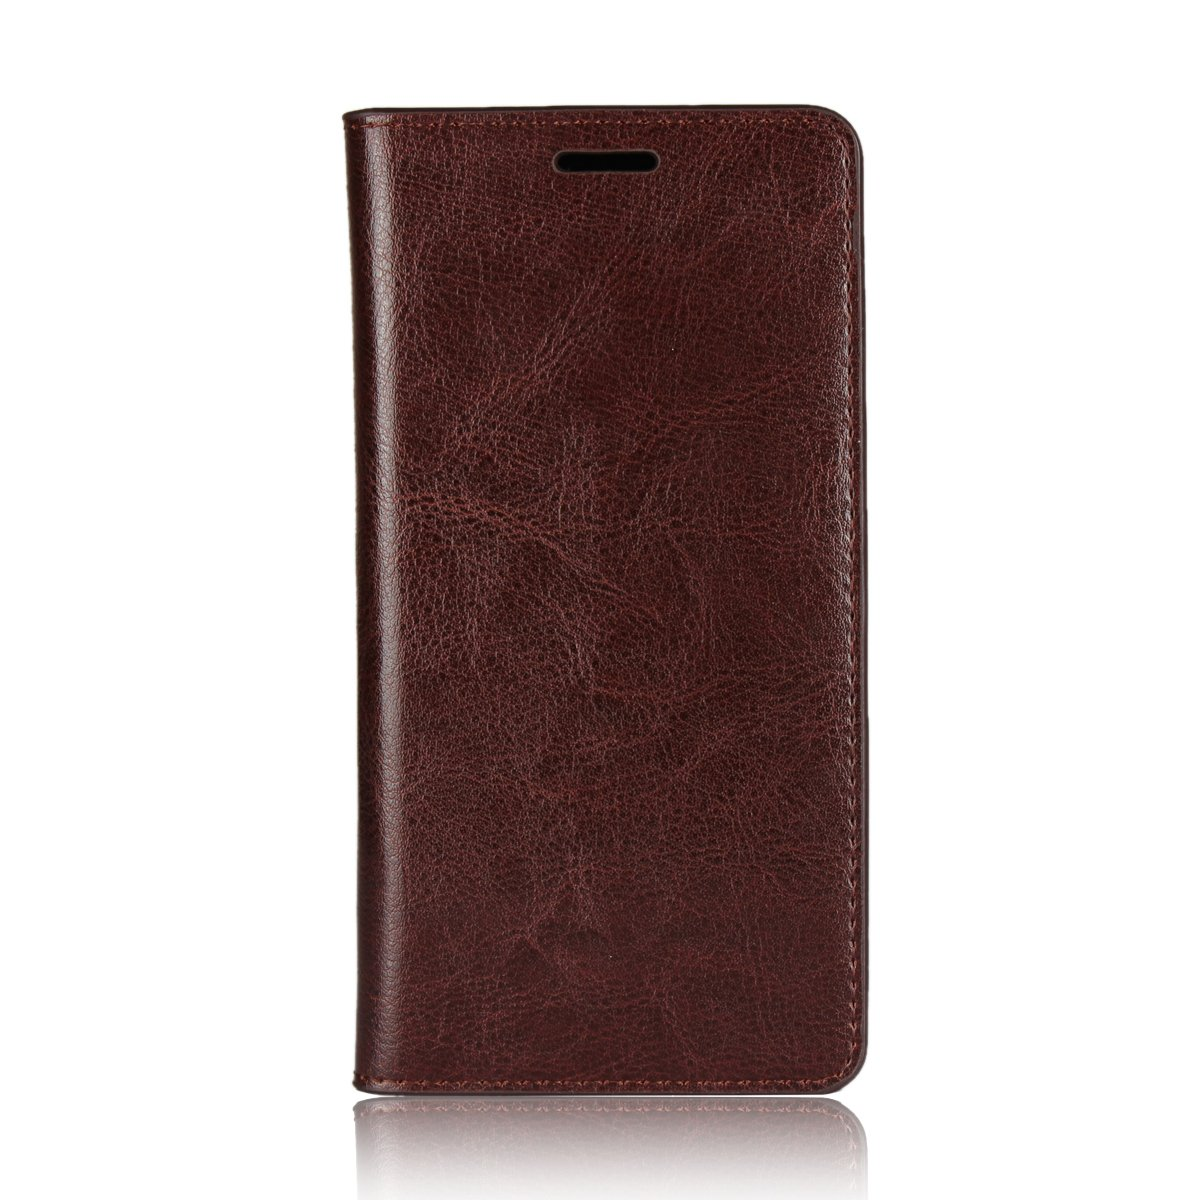 Torubia Sharp Android One X3 Case,[ Shock Absorbent ] Durable Protective Case PU Leather Kickstand Wallet Cover Durable Flip Case for Sharp Android One X3 Dark Brown